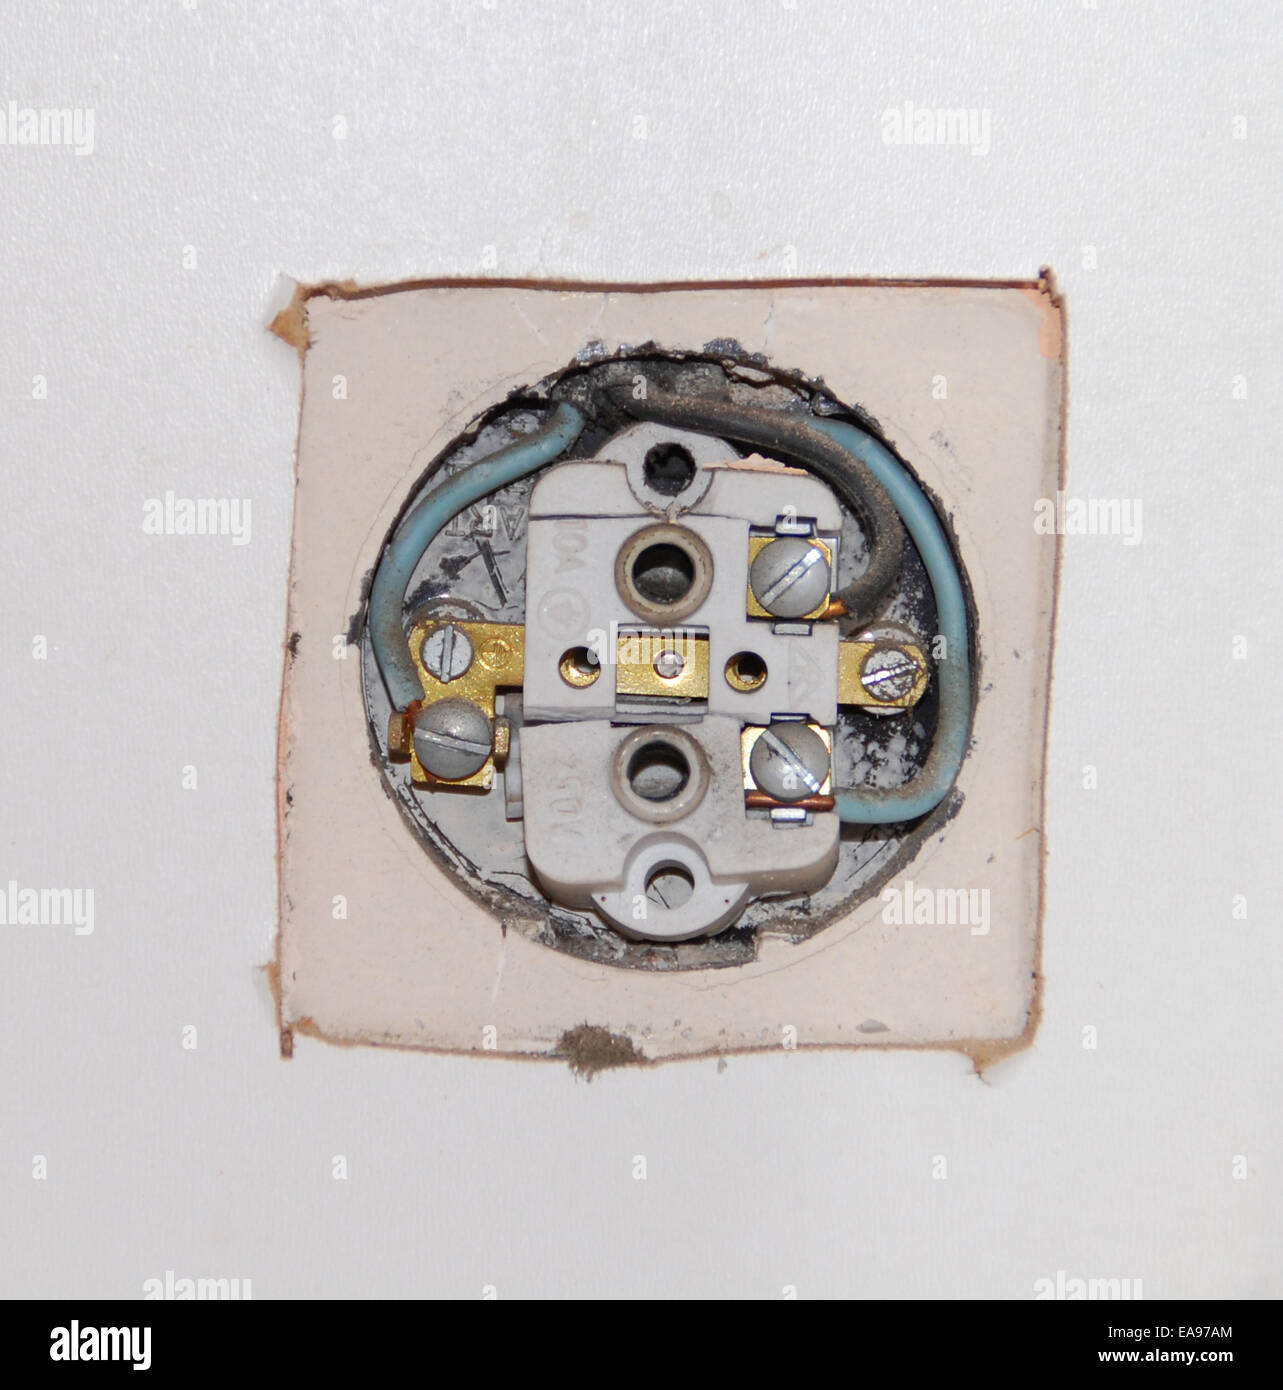 Socket And Wires Stock Photos Images Alamy Rewiring Old Doorbell Wall Broken Unusable Image